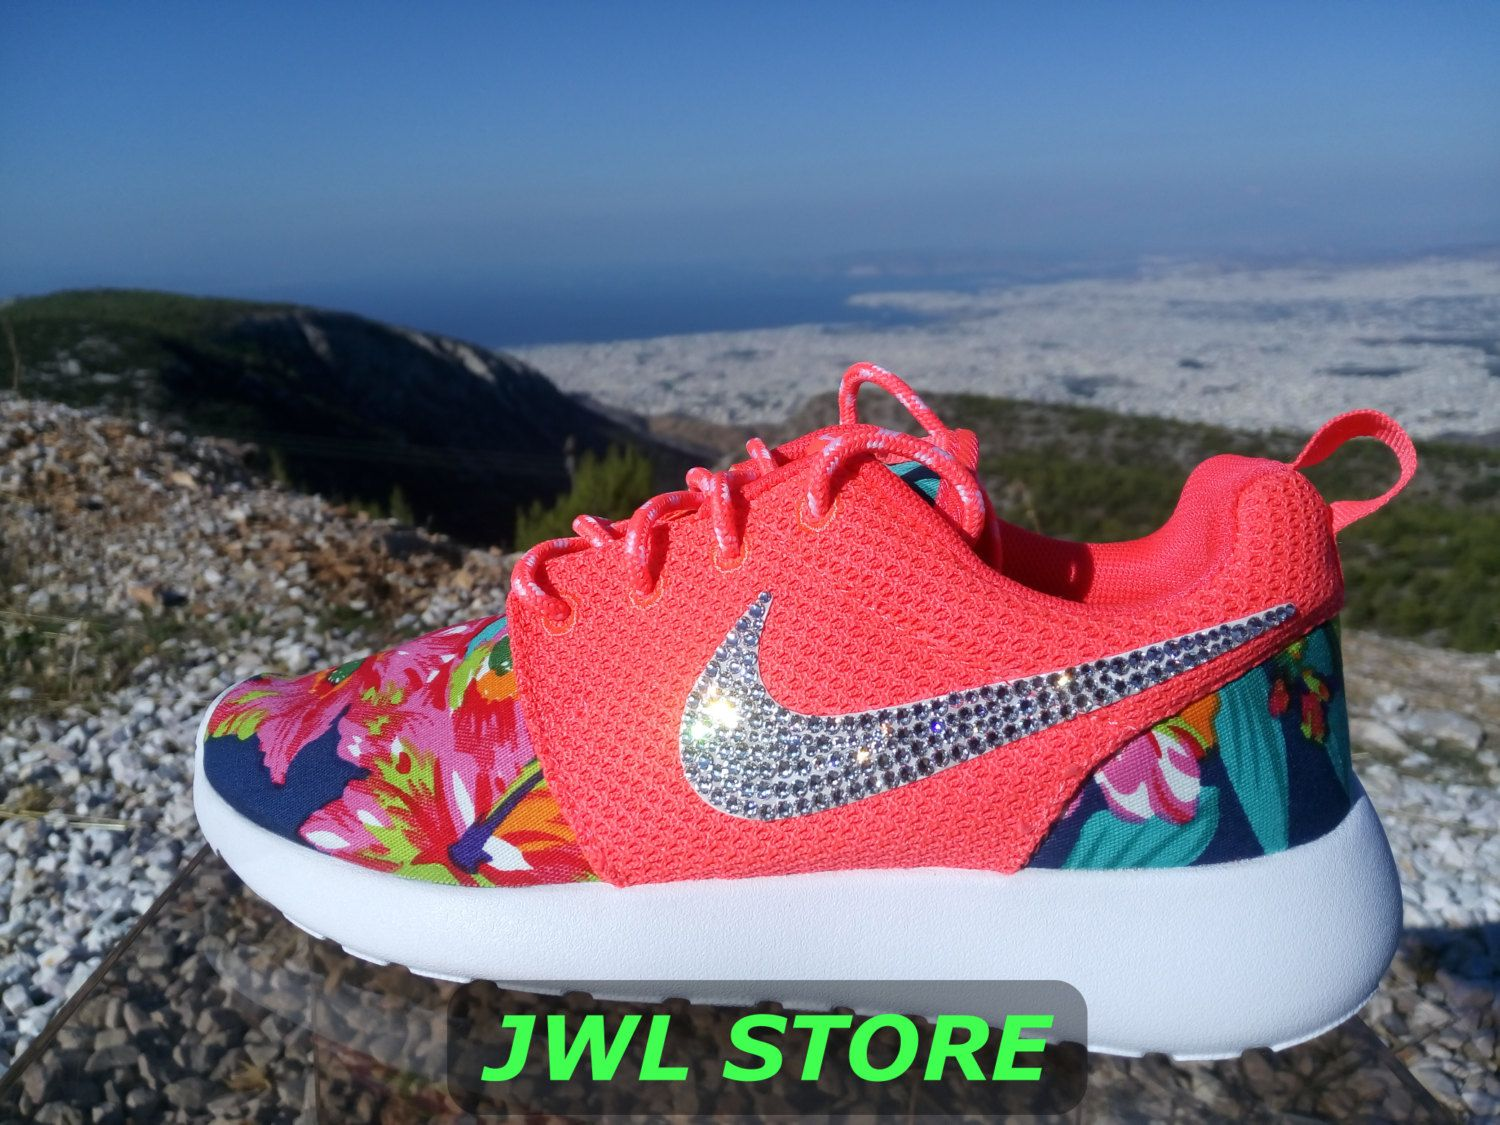 wmns custom nike roshe run shoes with fabric floral coral color sneakers  blinged with swarovski rhinestones 4299df8d7c